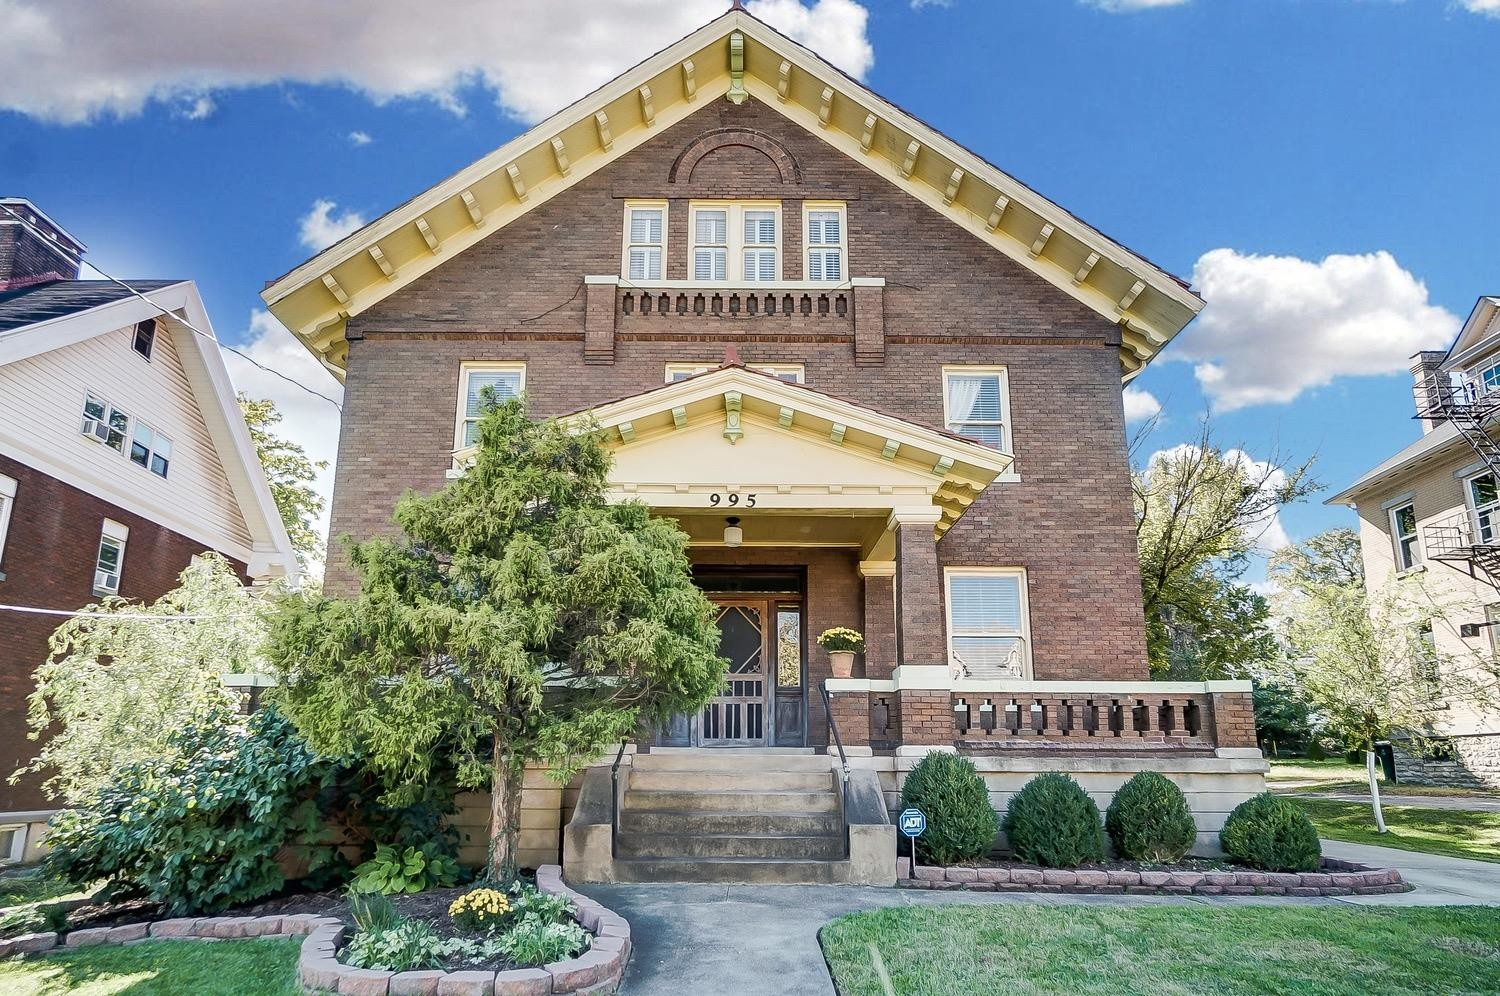 5-Bedroom House In North Avondale